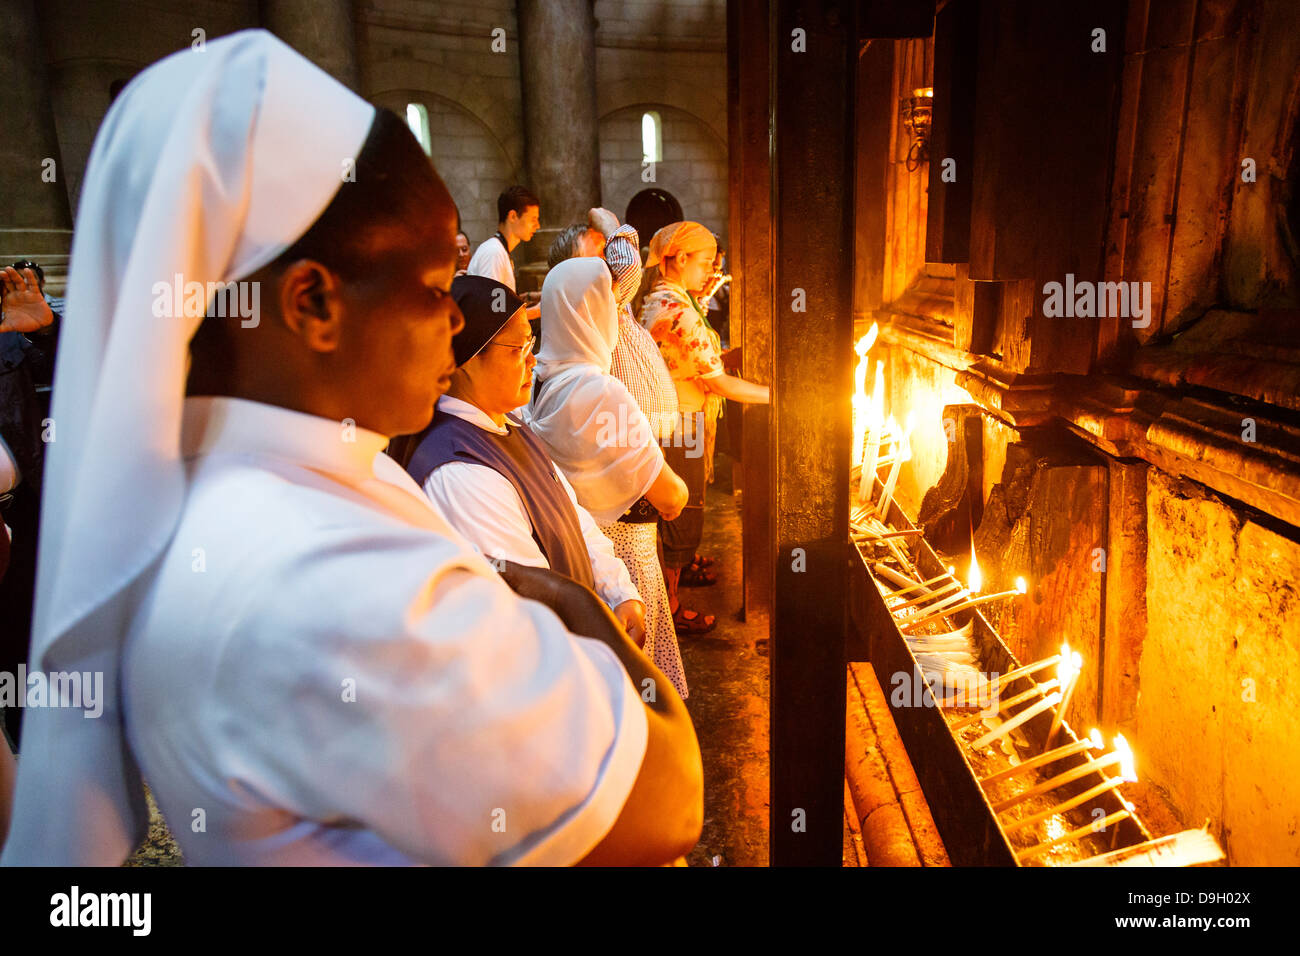 People at the church of the Holy Sepulchre in the old city, Jerusalem, Israel. - Stock Image